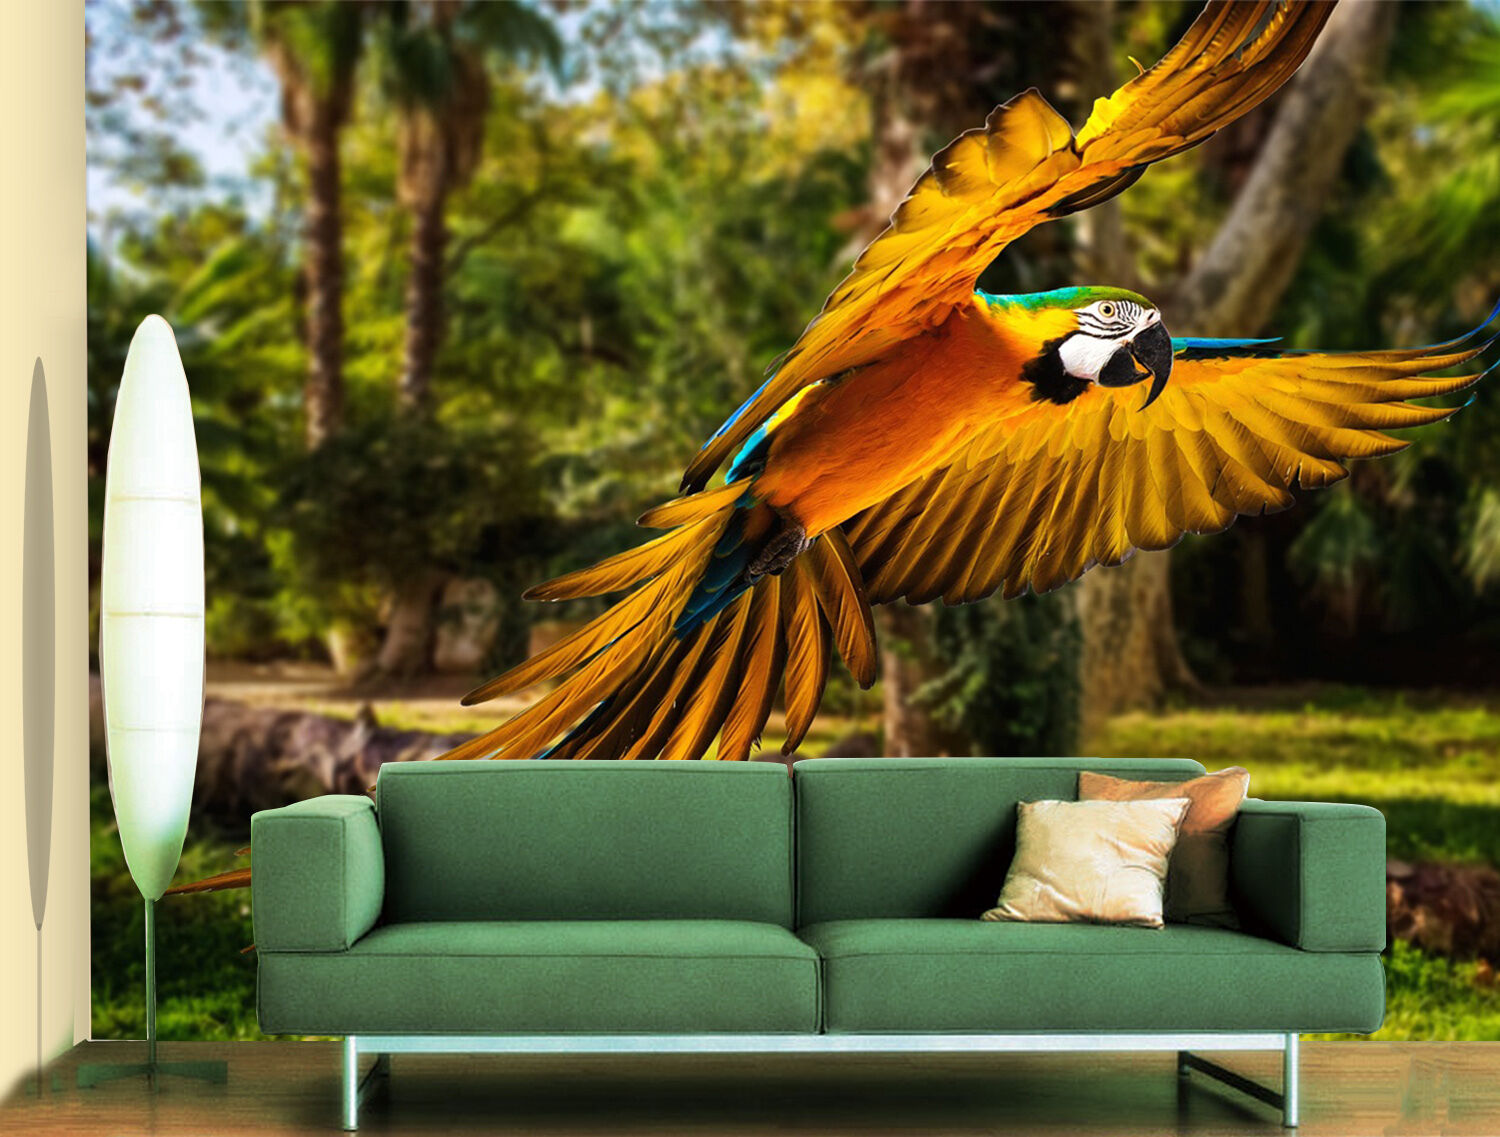 3D Grove Parrot 800 Wallpaper Mural Paper Wall Print Wallpaper Murals UK